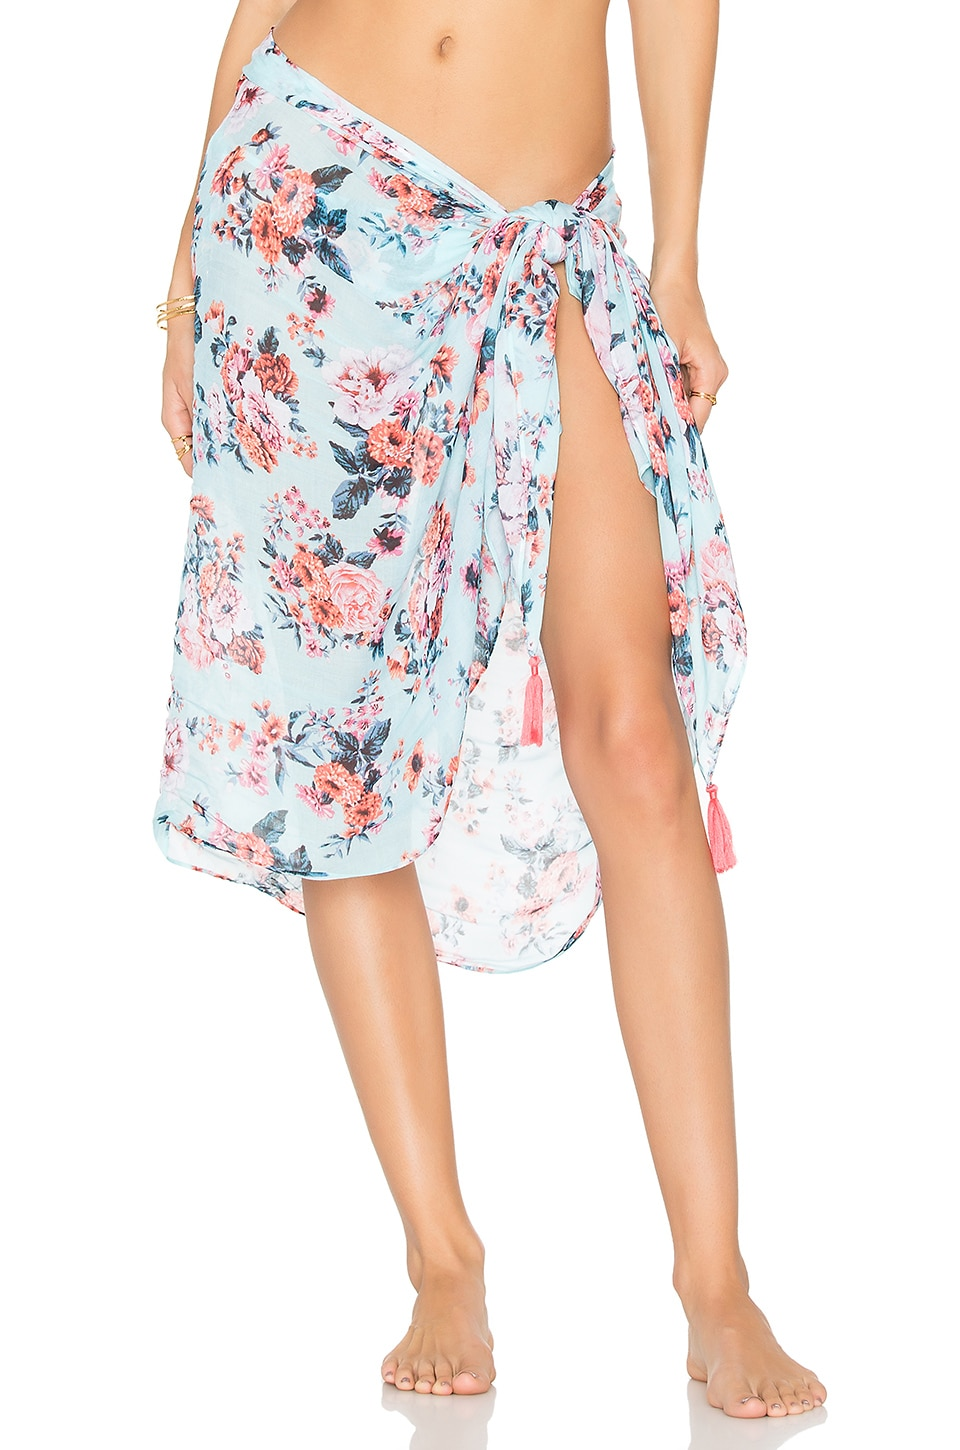 Seafolly Antique Floral Sarong in Pastel Turquoise